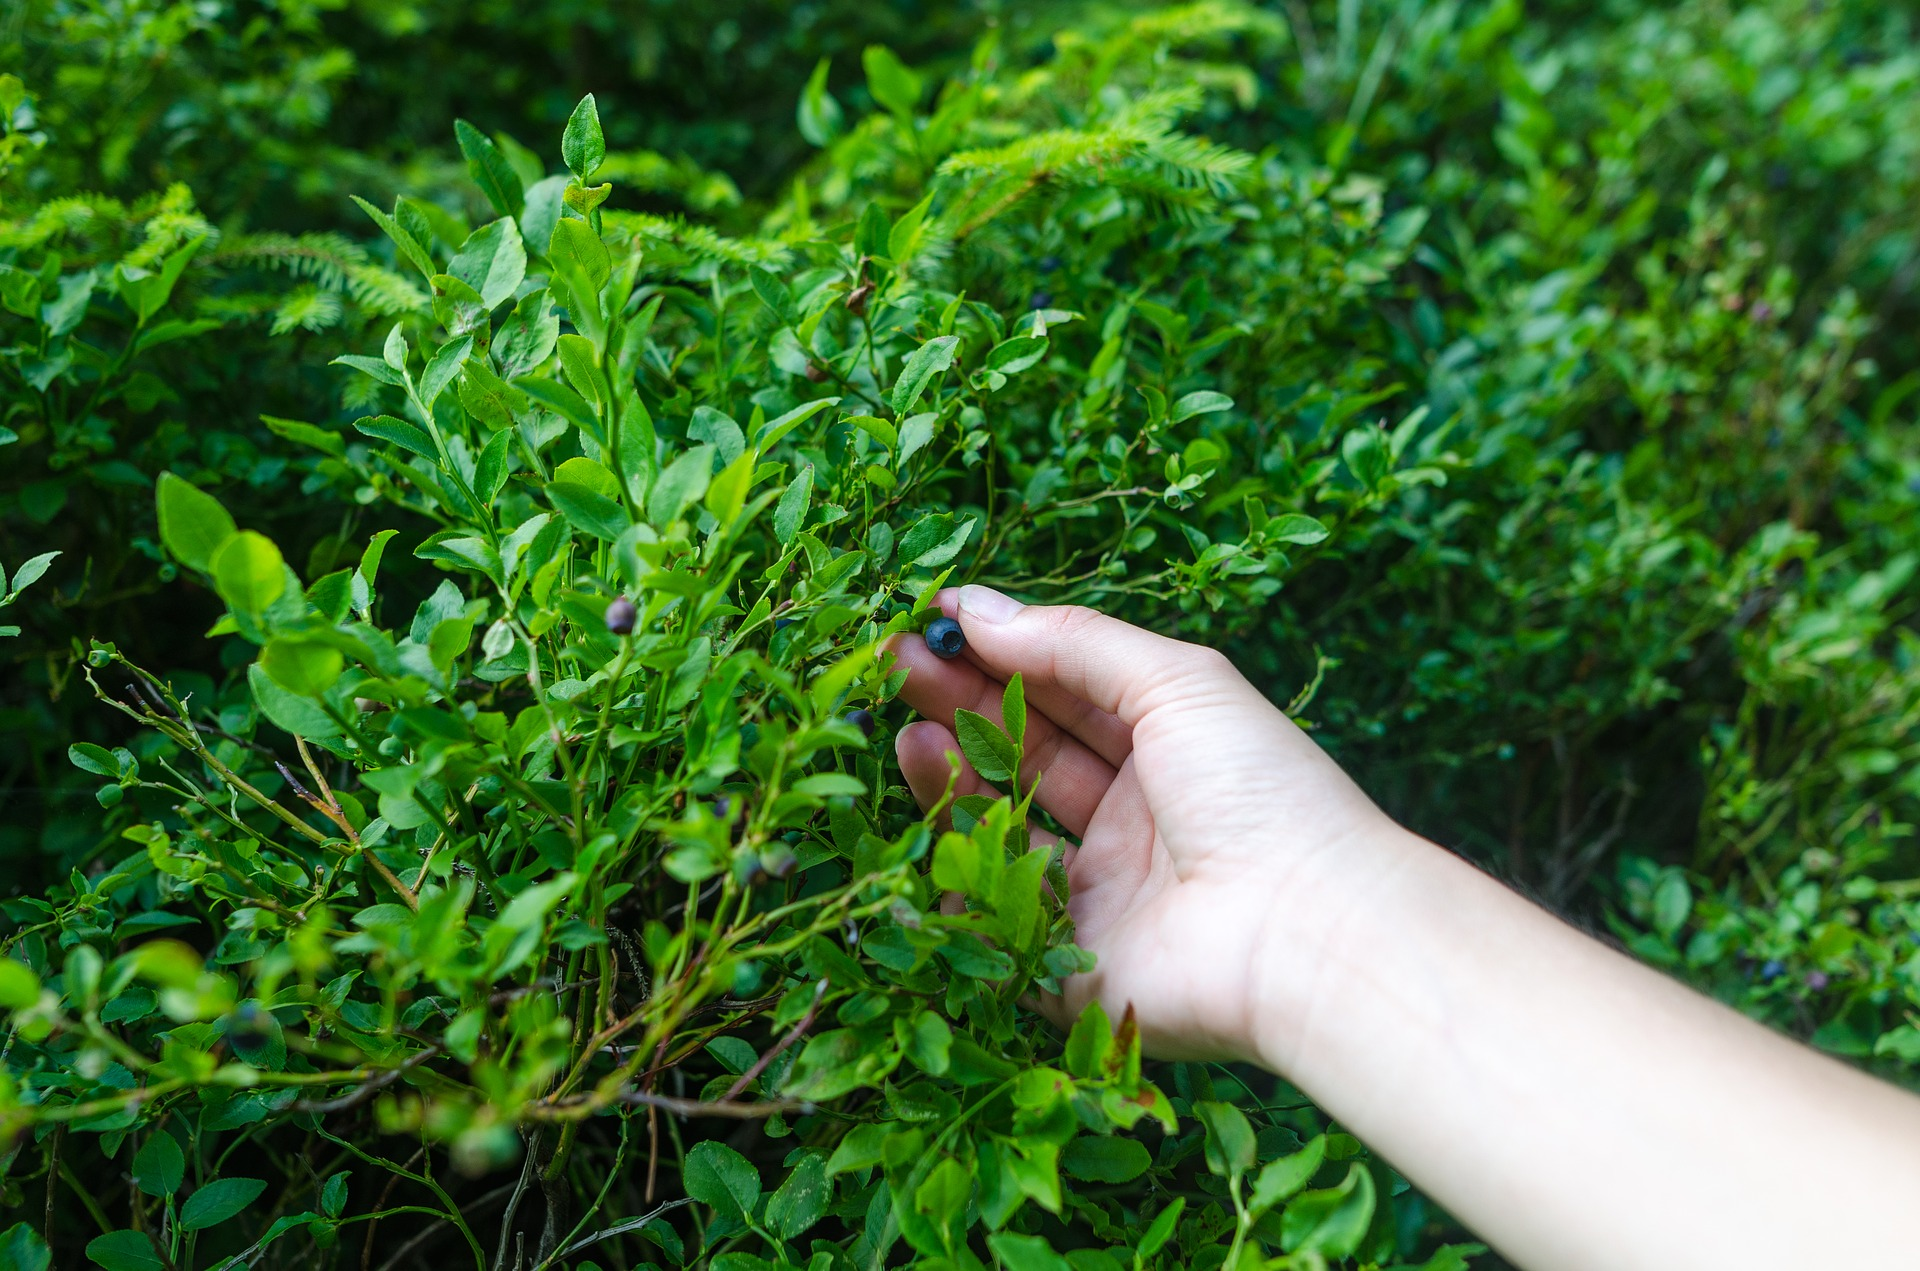 Can pine needles be used as berry mulch